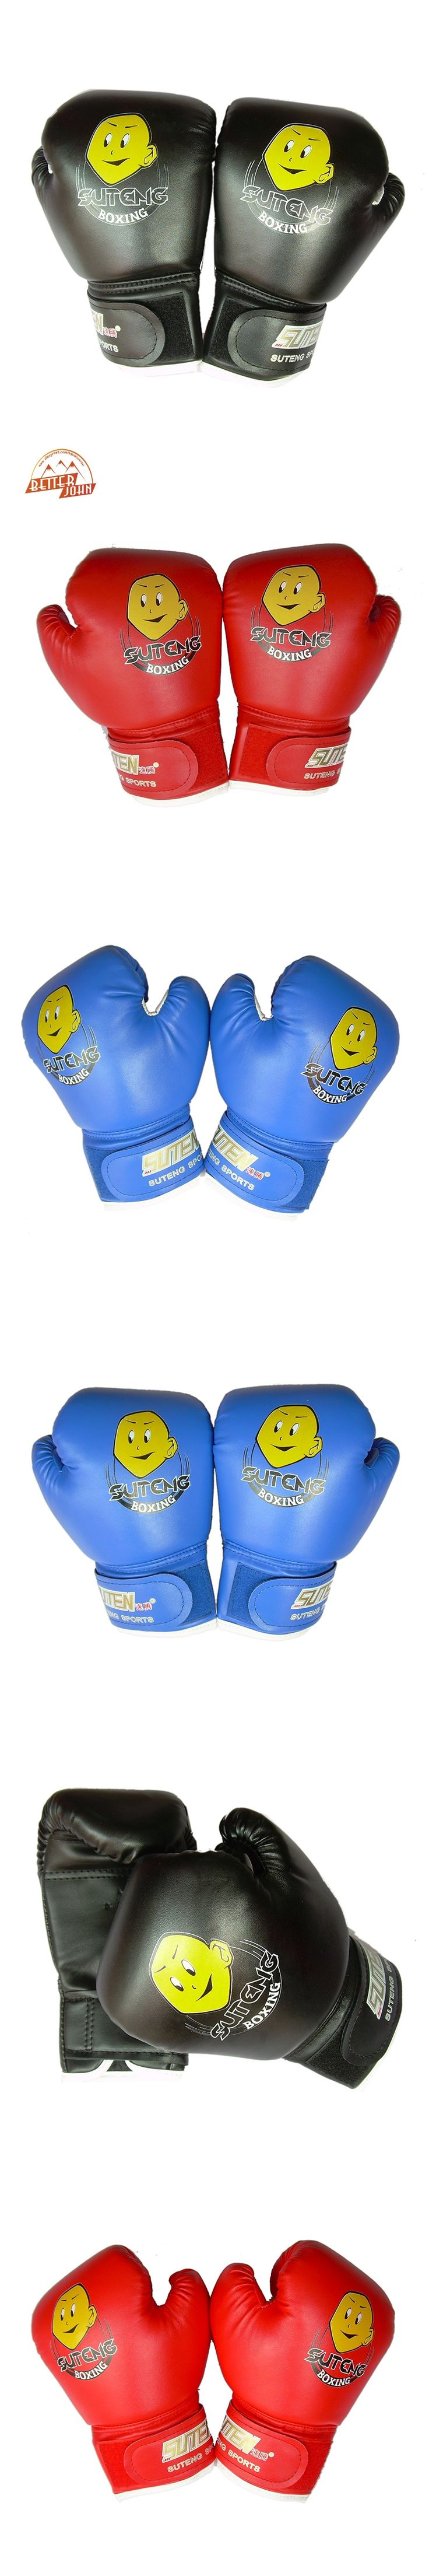 SUTEN High Quality Child 1 Pair Durable Boxing Gloves Cartoon Sparring Kick Fight Gloves Training Fists PU Leather Muay Sandbag